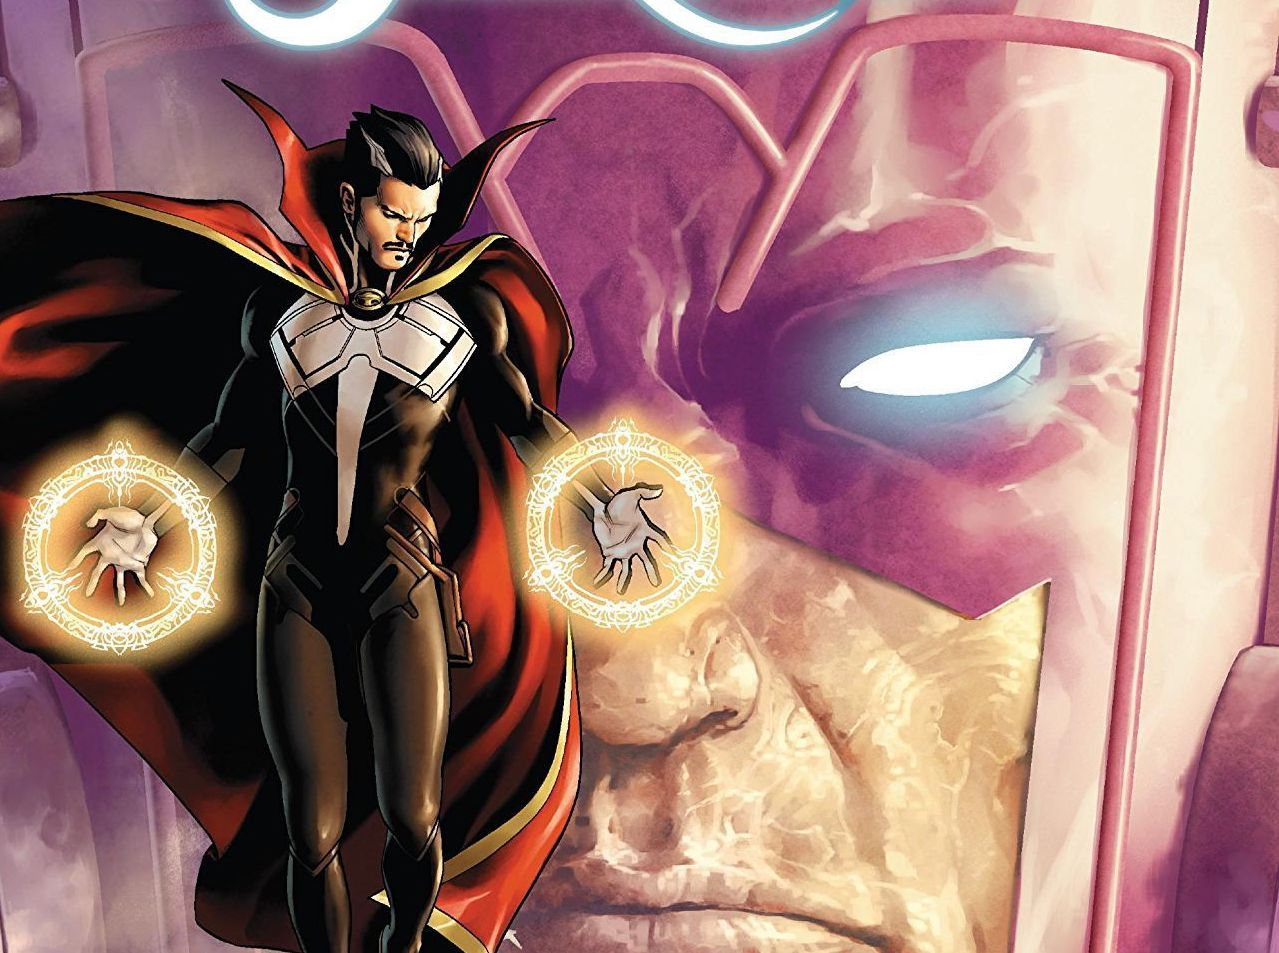 Doctor Strange by Mark Waid Vol. 3: Herald Review